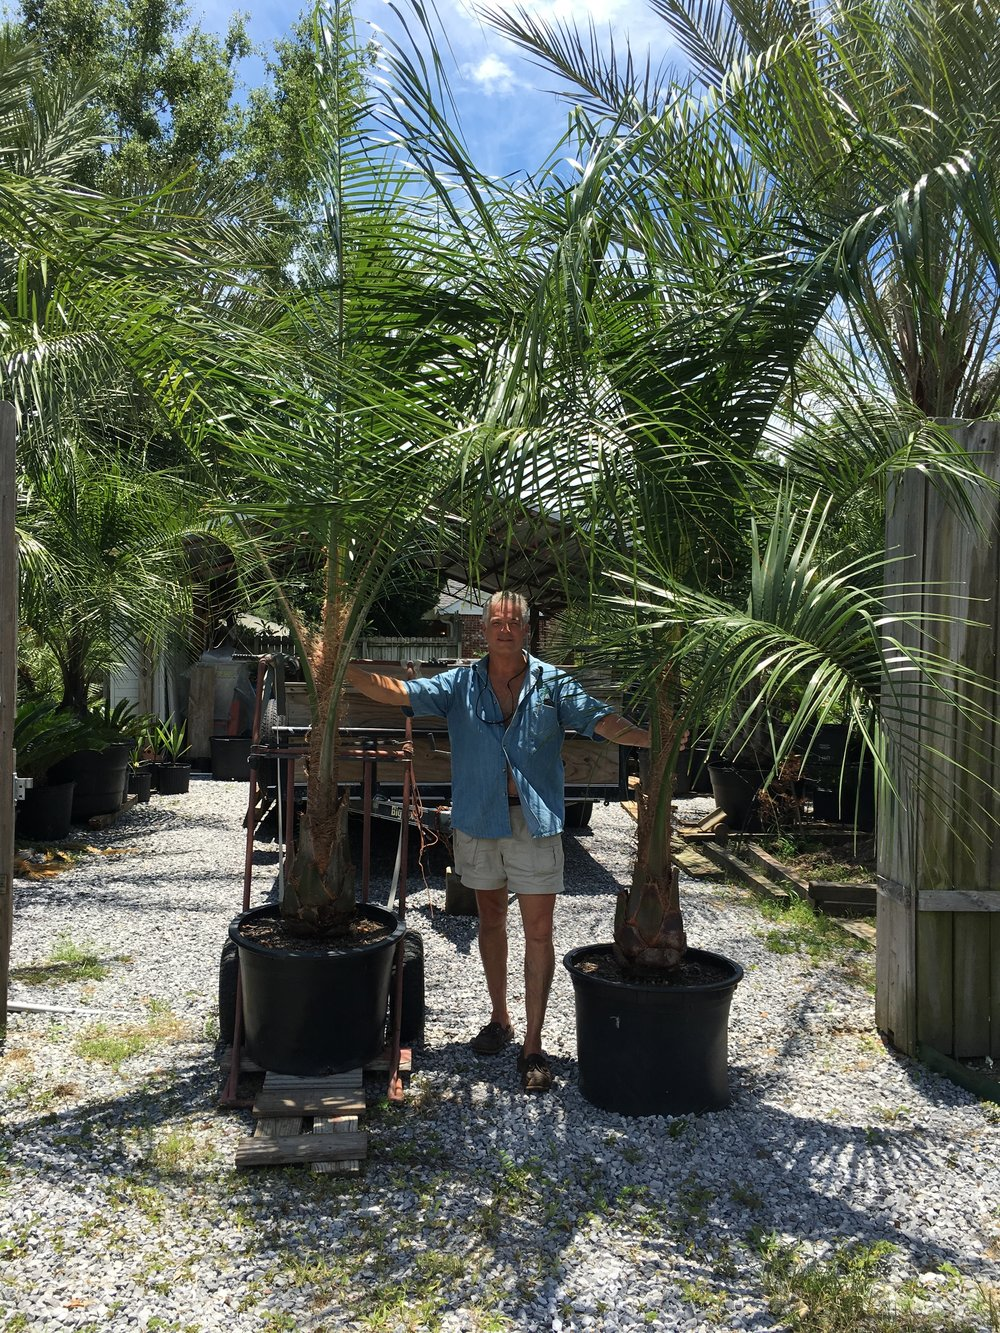 30 Gallon Mule Palms. Privacy fence is 8' high.